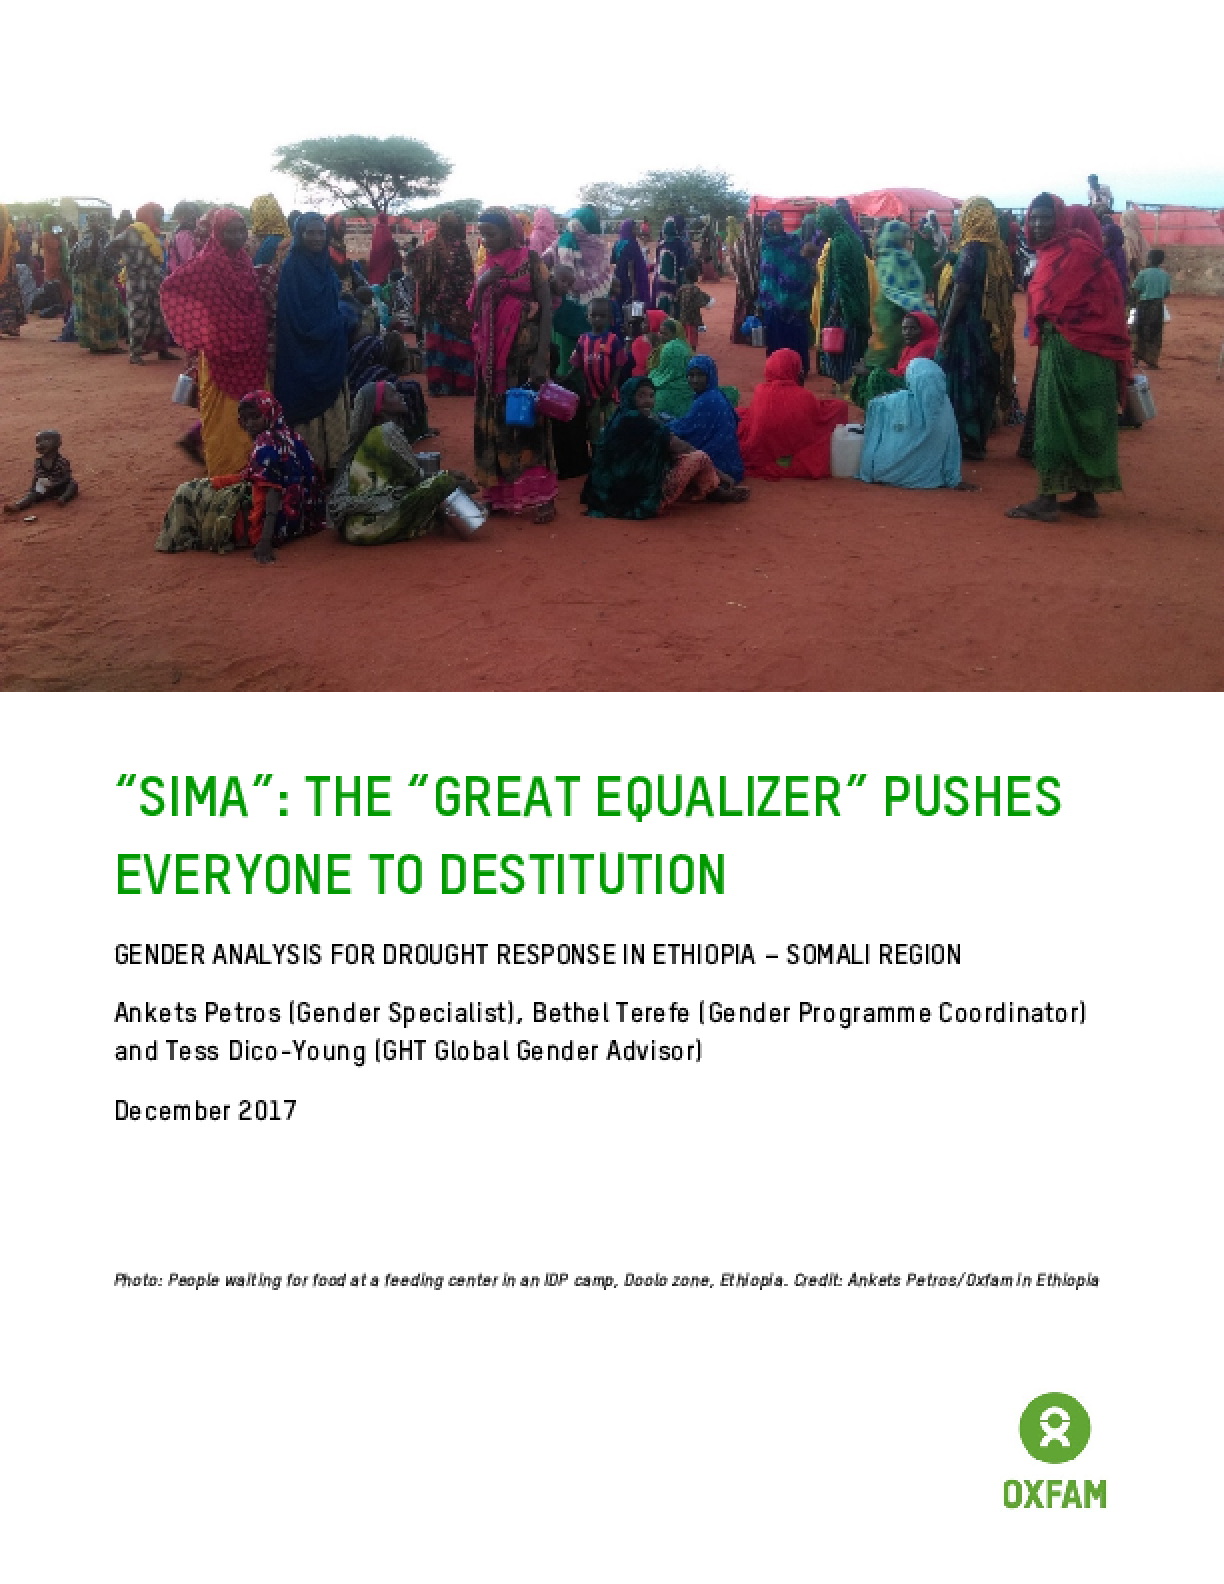 """Sima"": The ""Great Equalizer"" Pushes Everyone to Destitution: Gender analysis for drought response in Ethiopia - Somali Region"